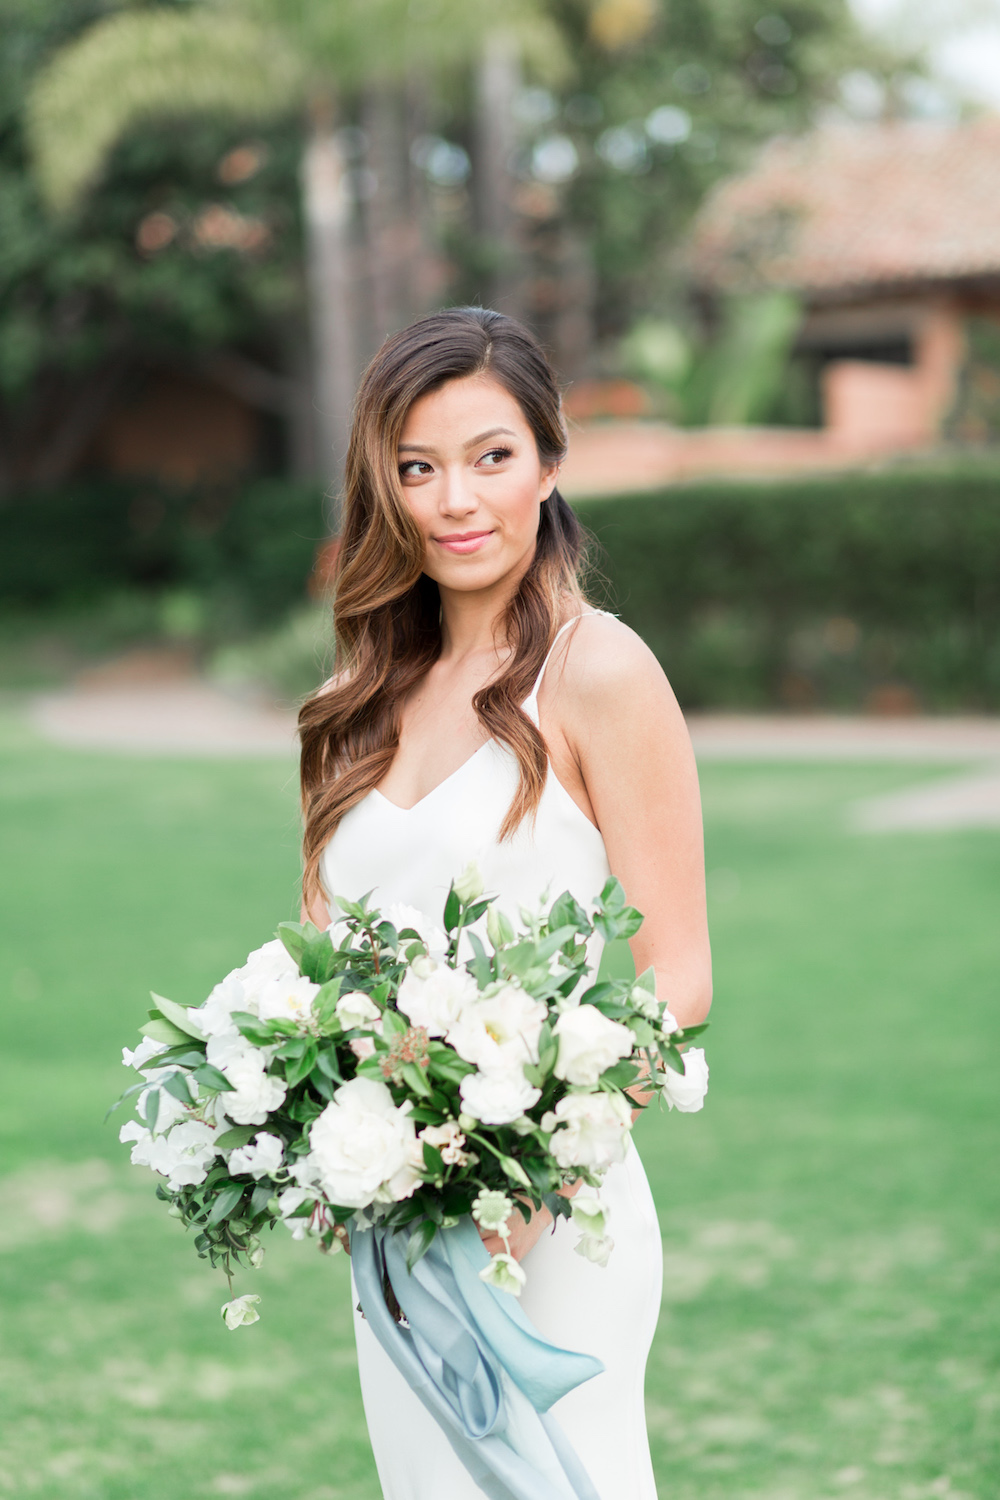 Garden romantic white bridal bouquet| Rancho Valencia Weddings | Rancho Santa Fe | Compass Floral | Wedding Florist in San Diego and Southern California | Cavin Elizabeth Photography